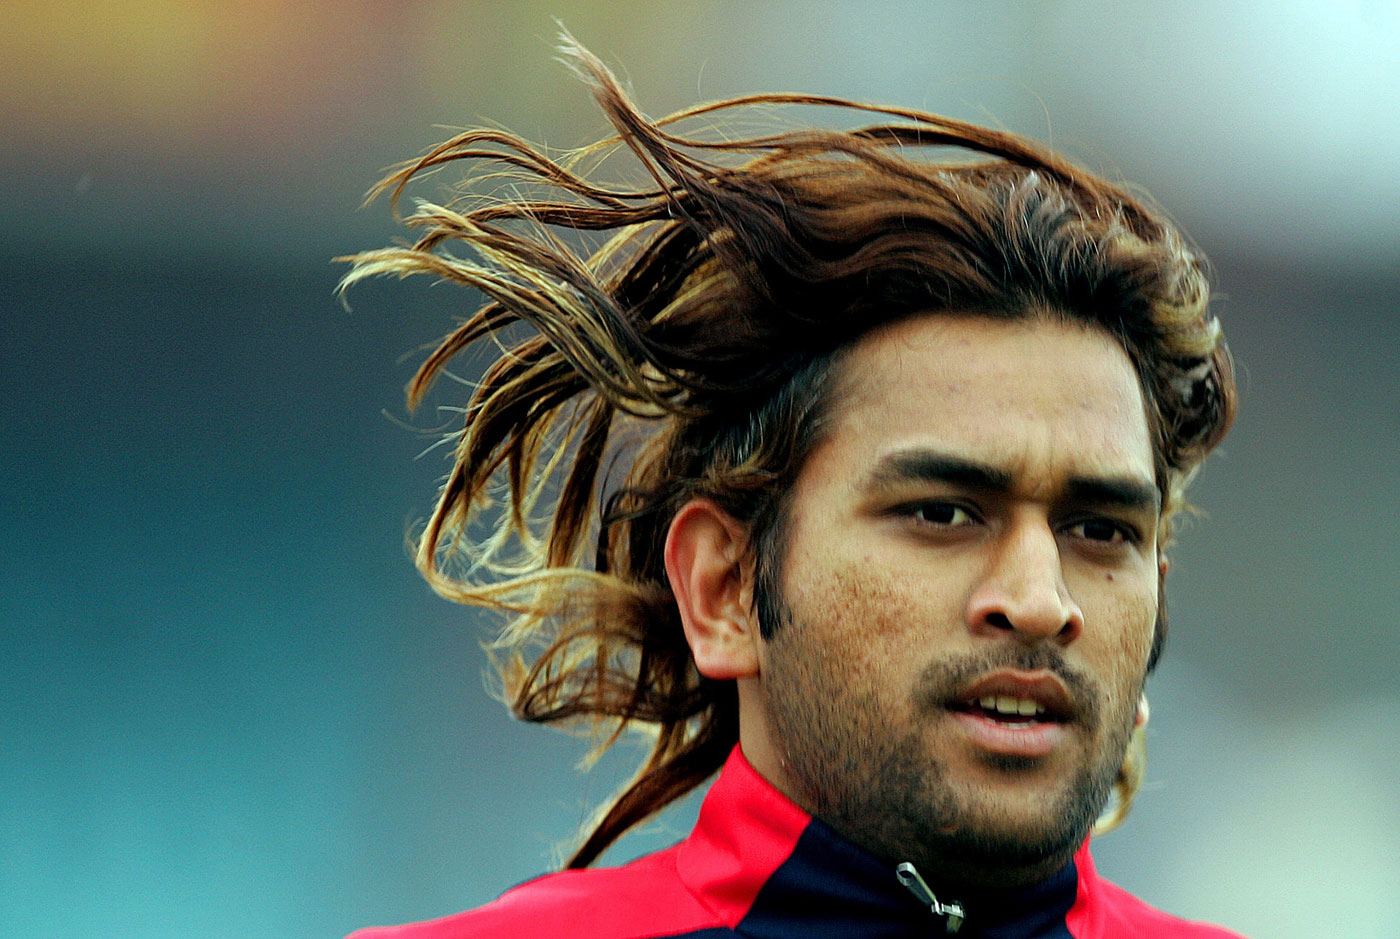 As wild as he got: Dhoni in his long-haired youth